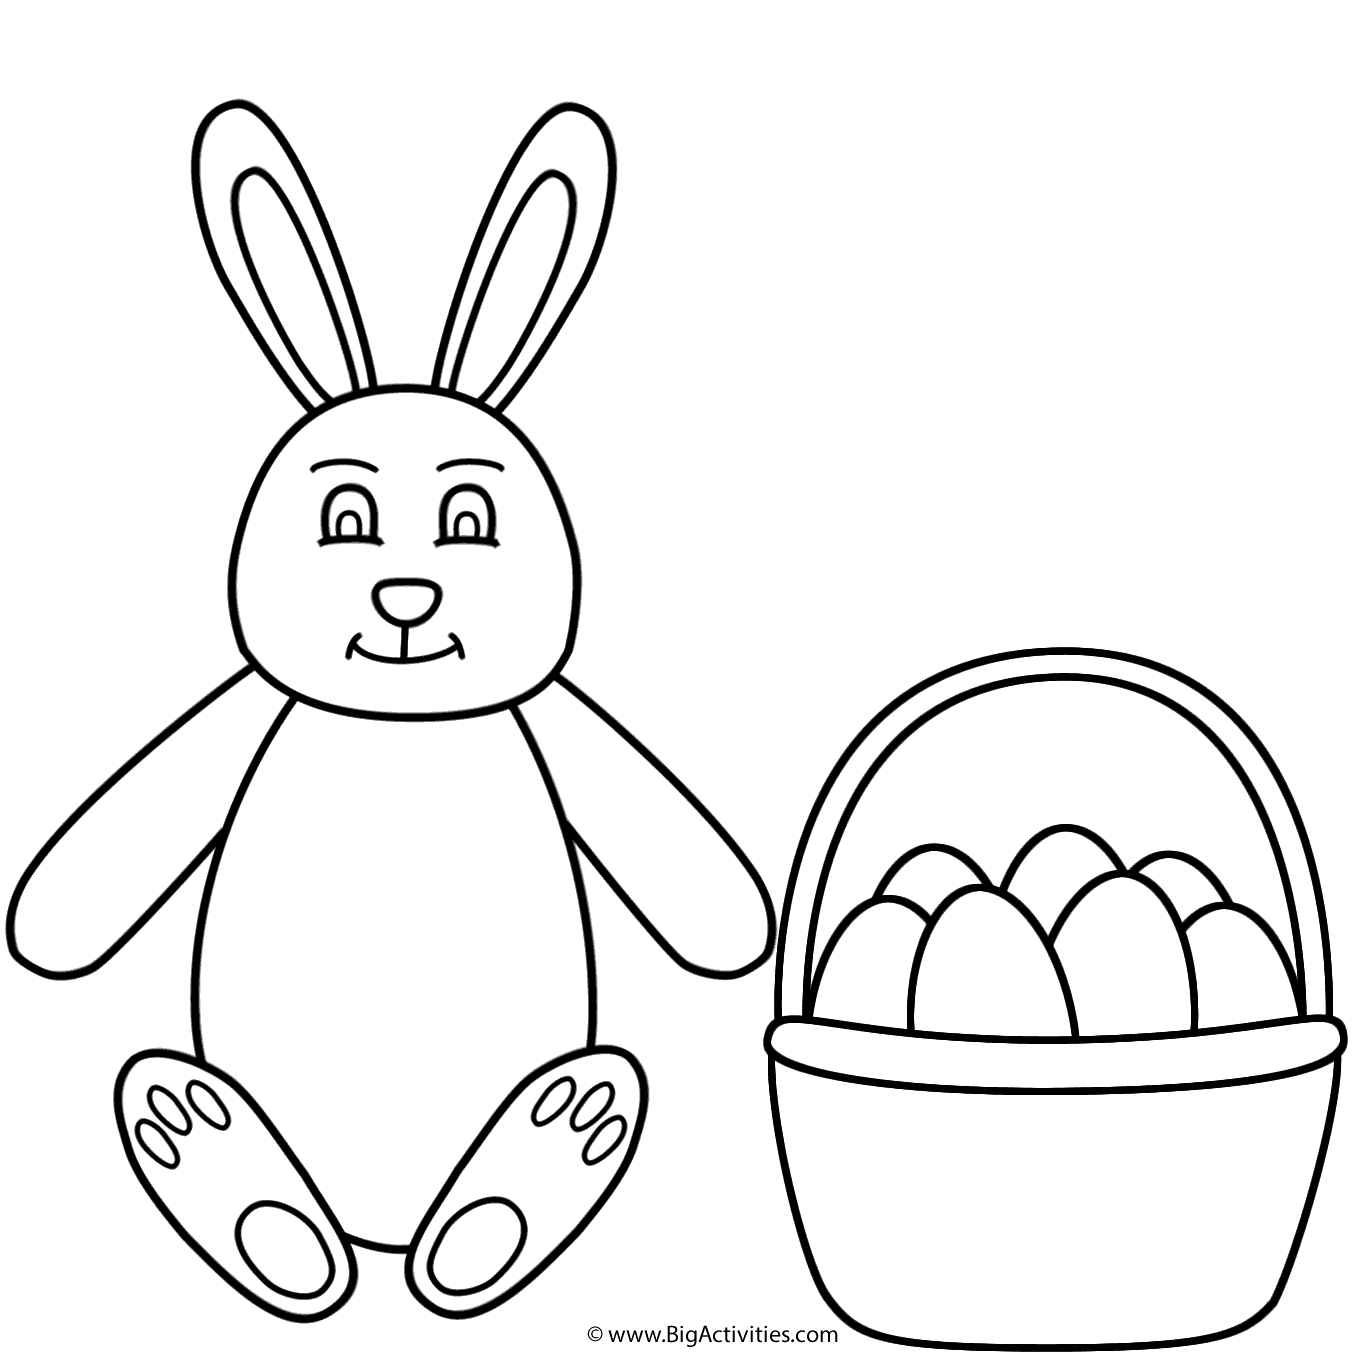 Easter Bunny Sitting And Basket Of Eggs